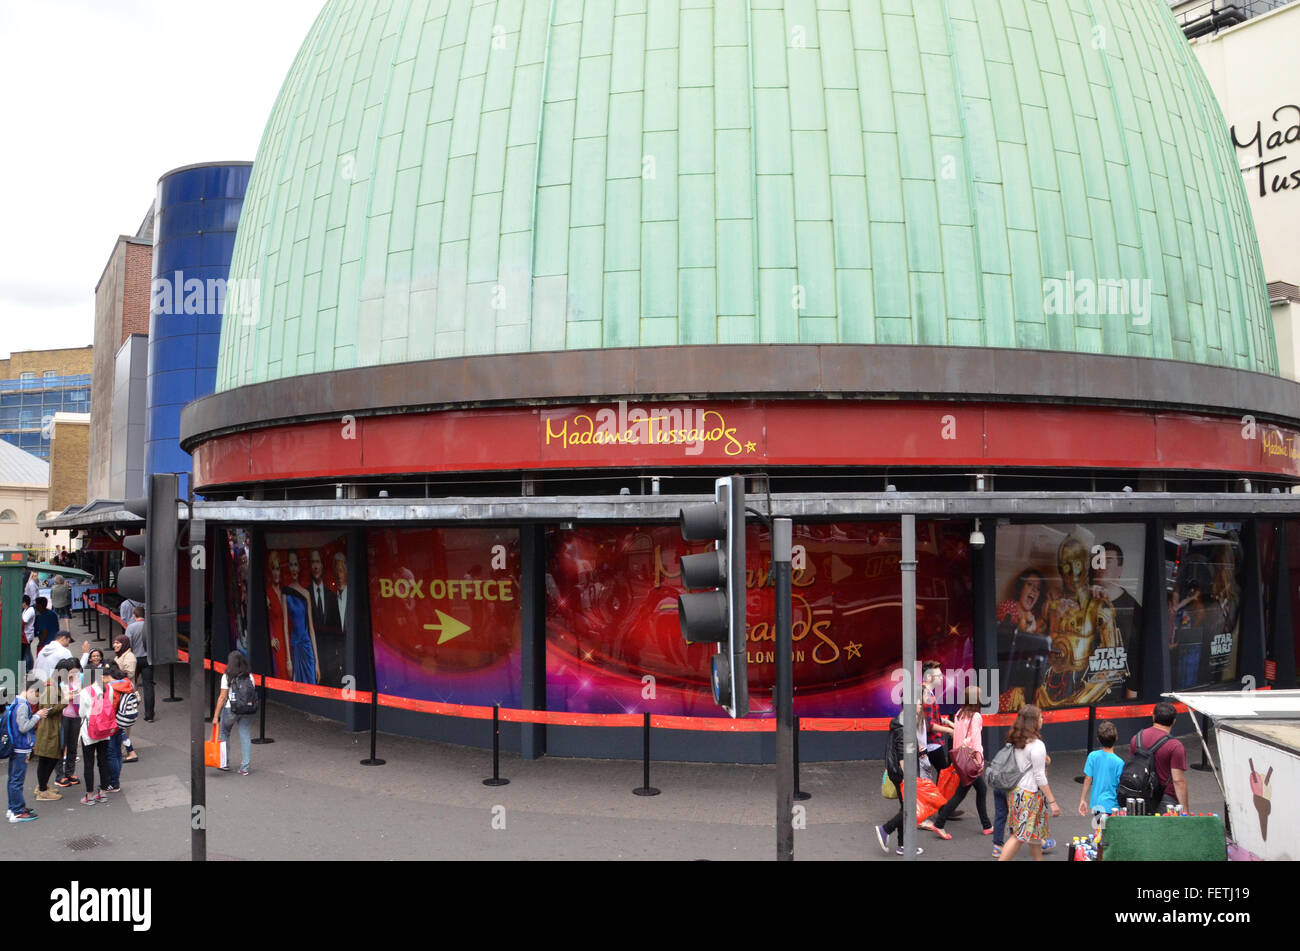 LONDON - AUGUST 6: Madame Tussauds, whose London location is shown on August 6, 2015, has 20 locations around the - Stock Image